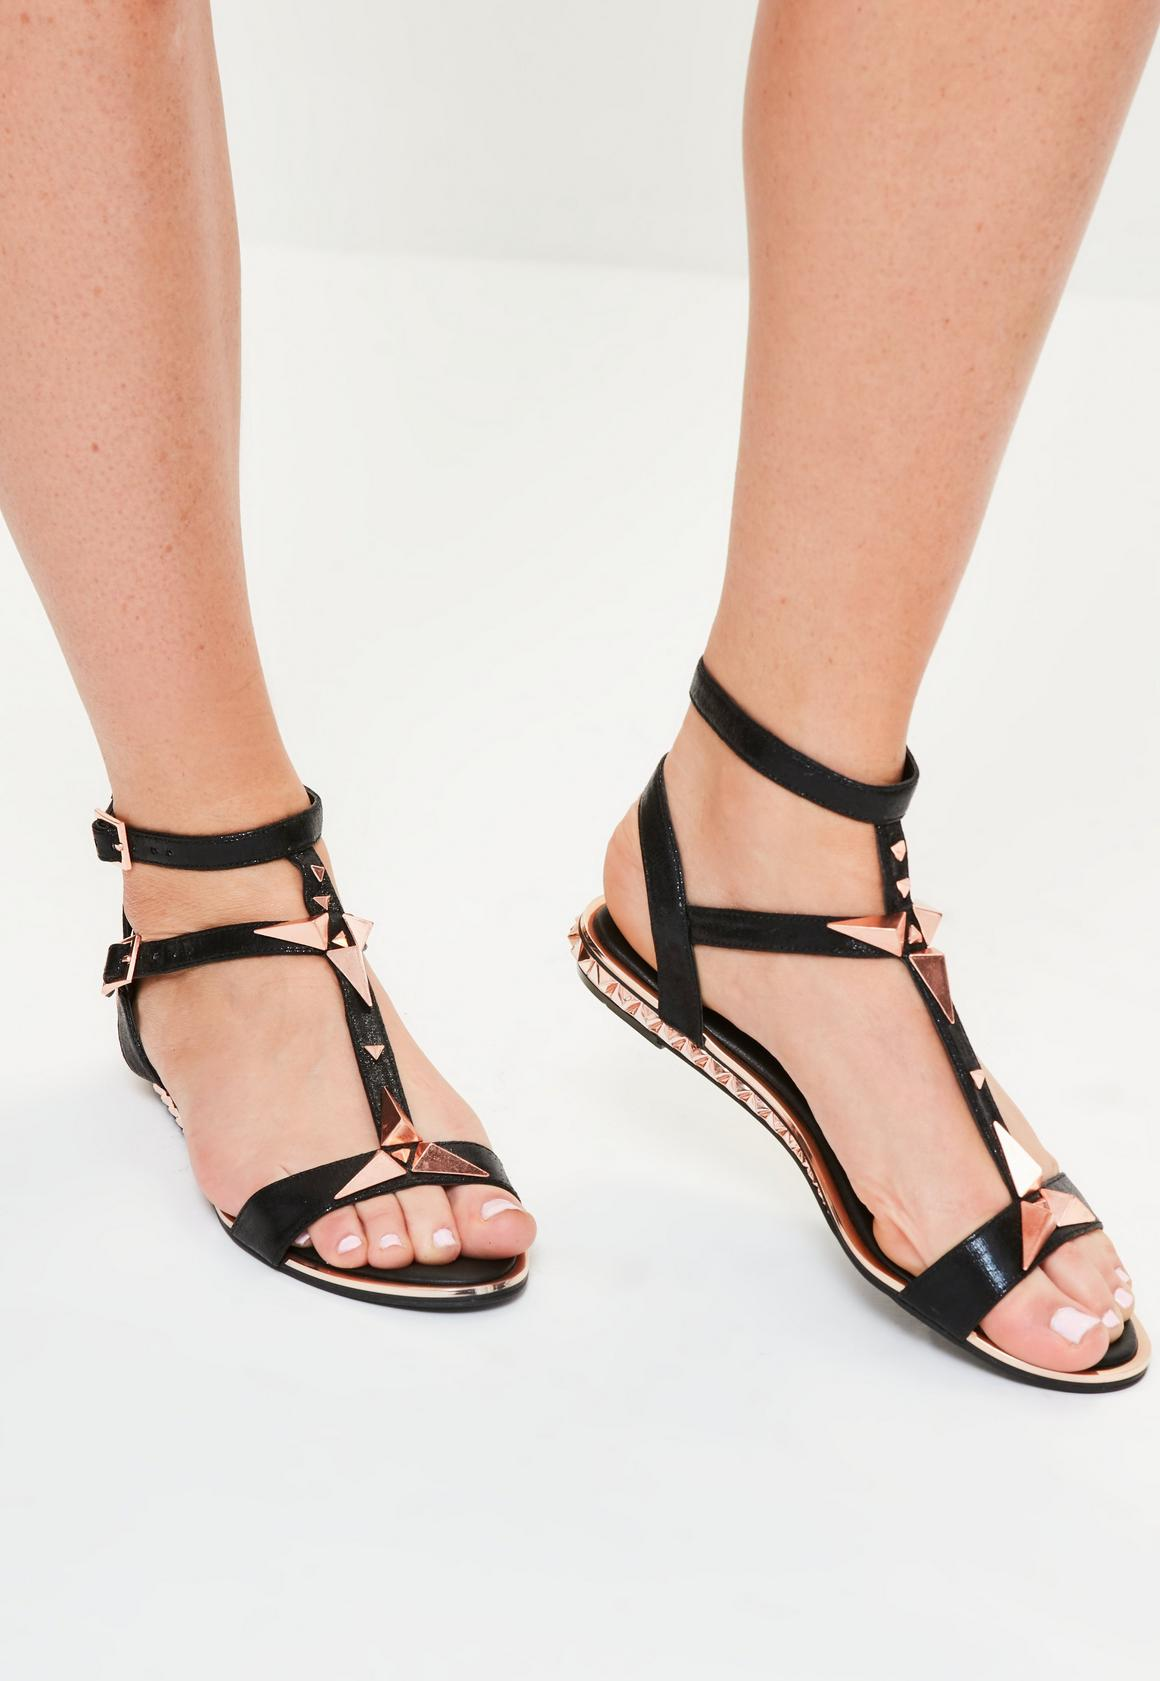 Black Shiny Studded Heel Sandals | Missguided